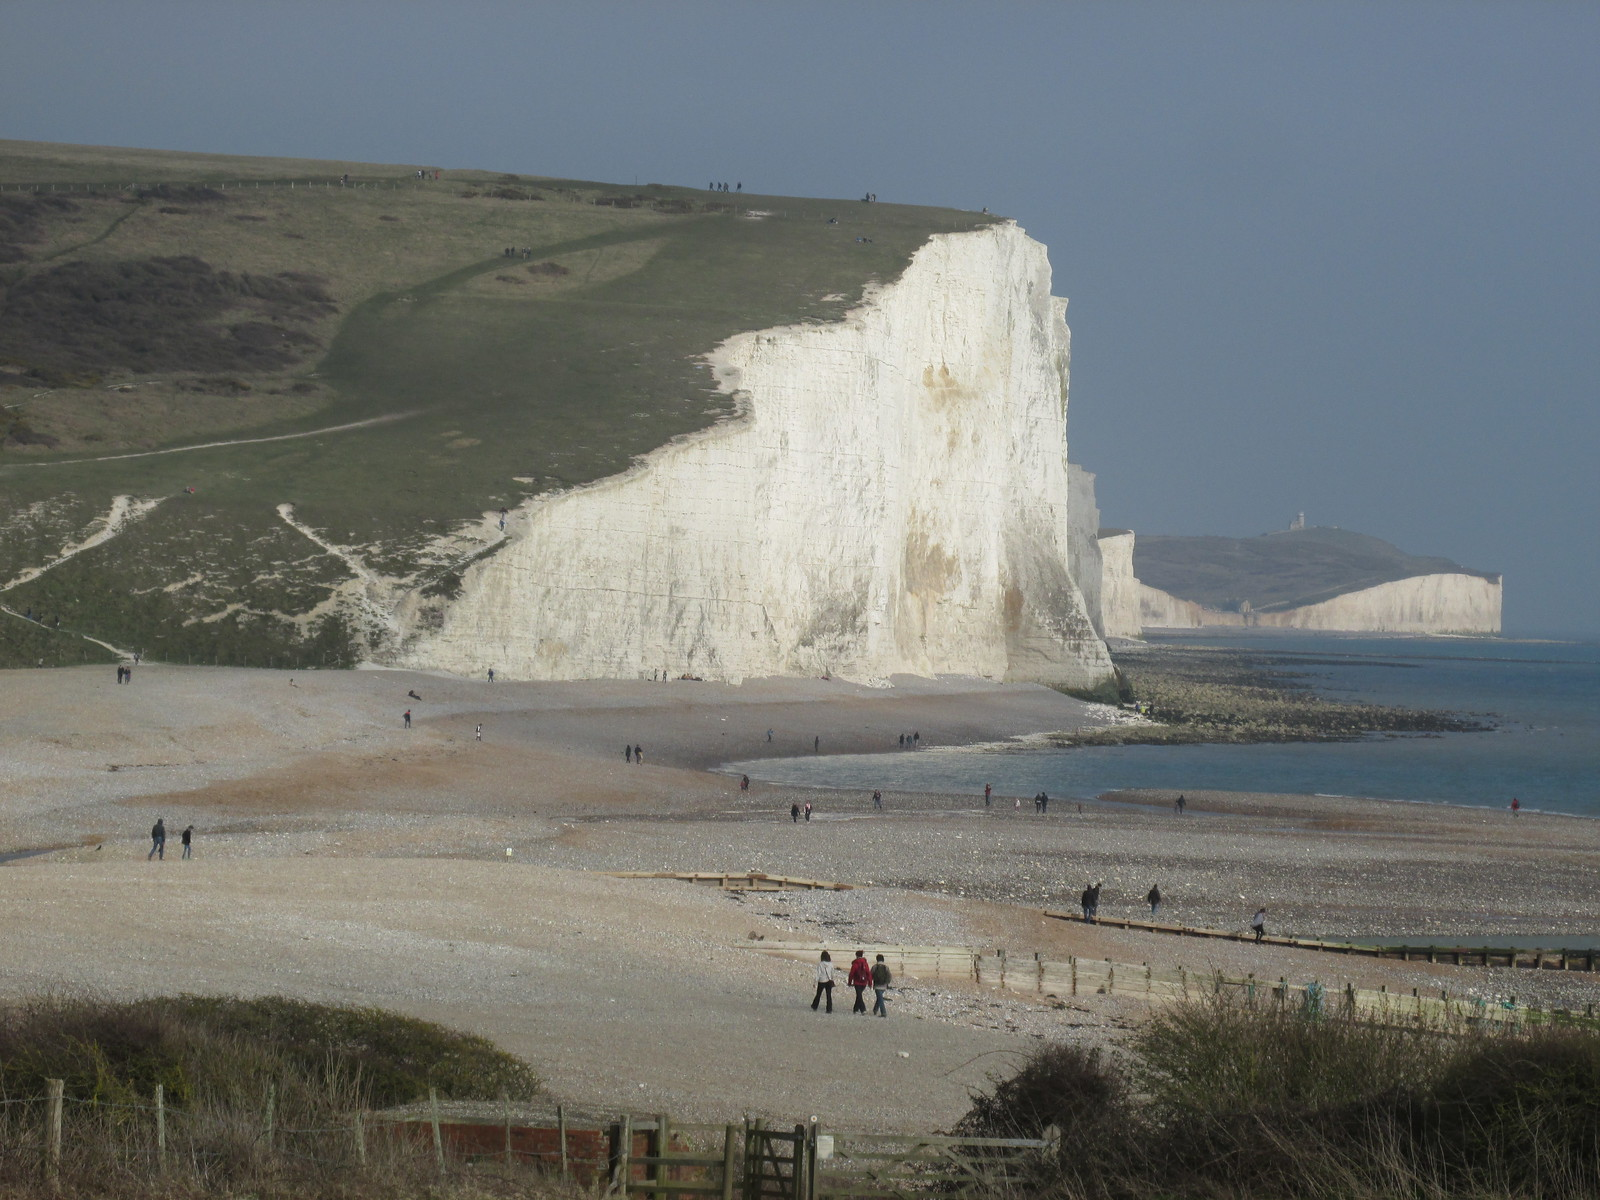 April 6, 2015: Glynde to Seaford Cuckmere Haven & Seven Sisters